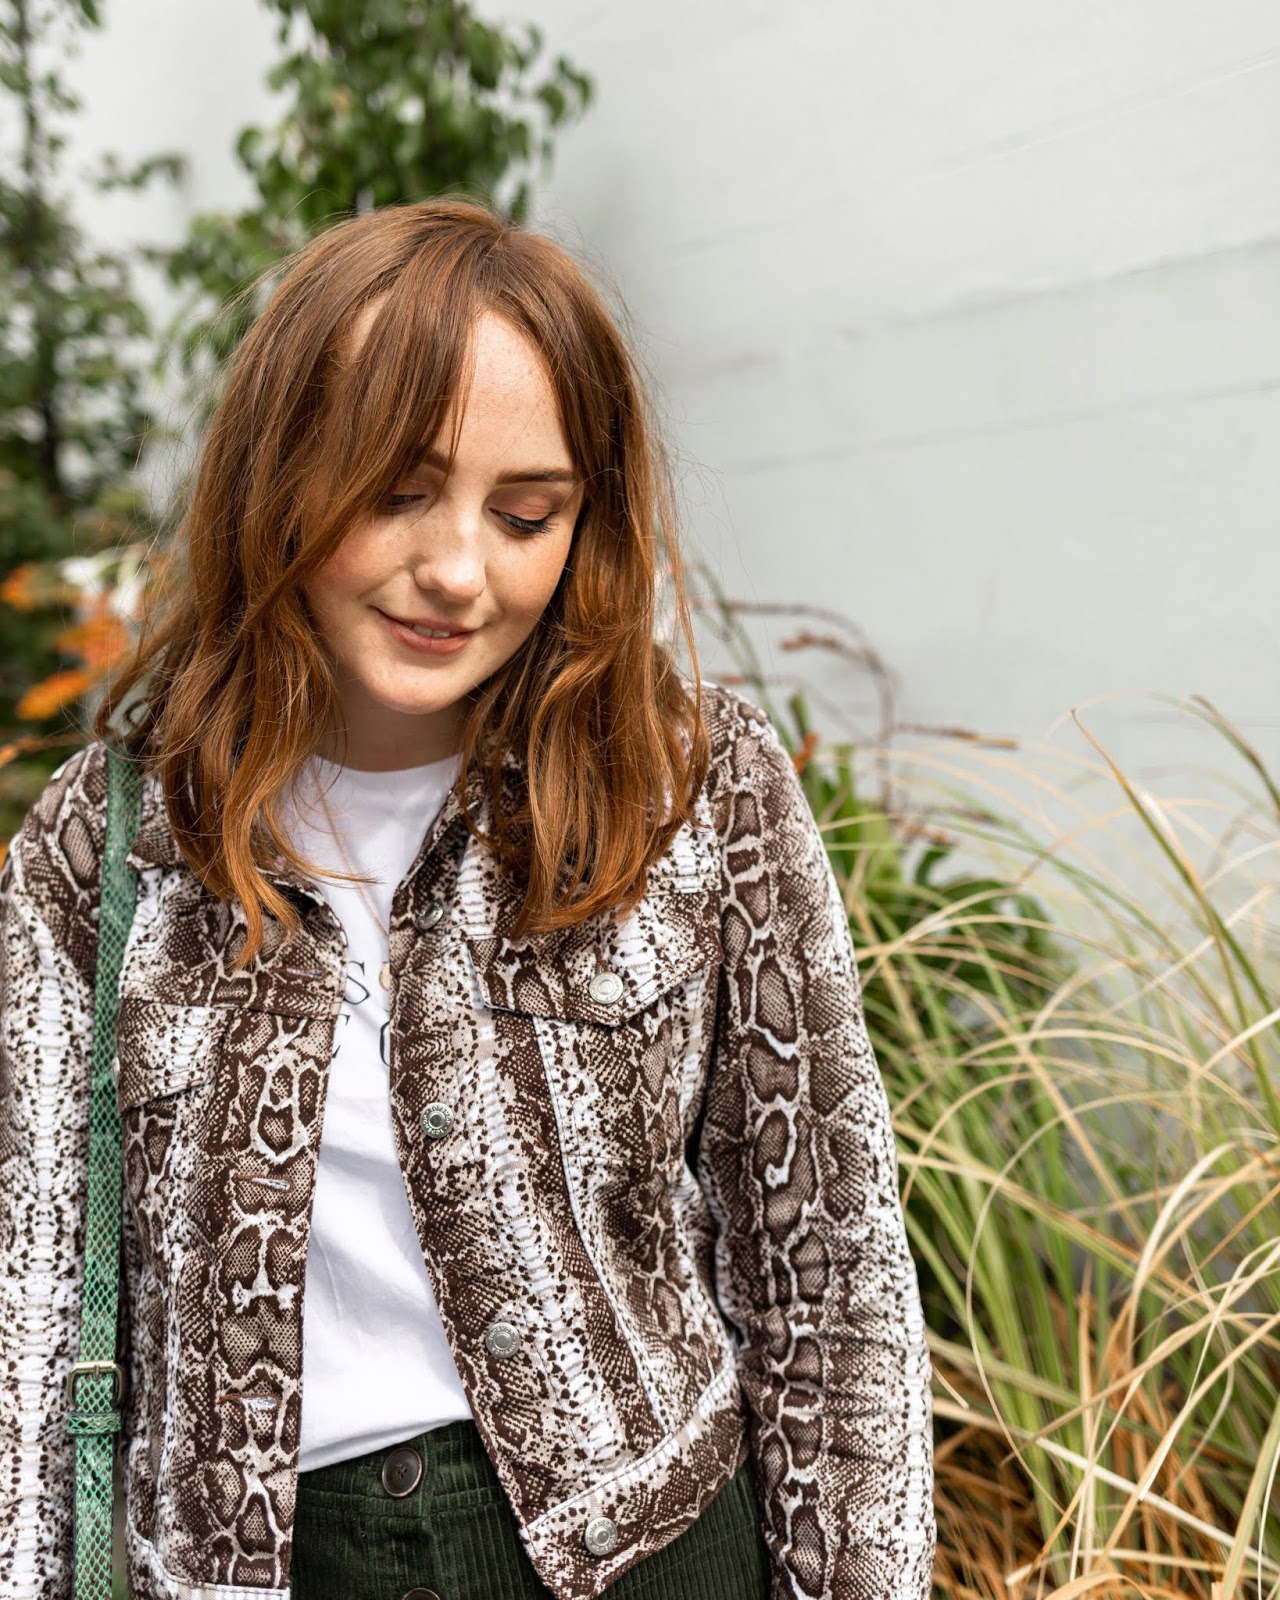 Liverpool fashion blogger wearing topshop snake print denim jacket